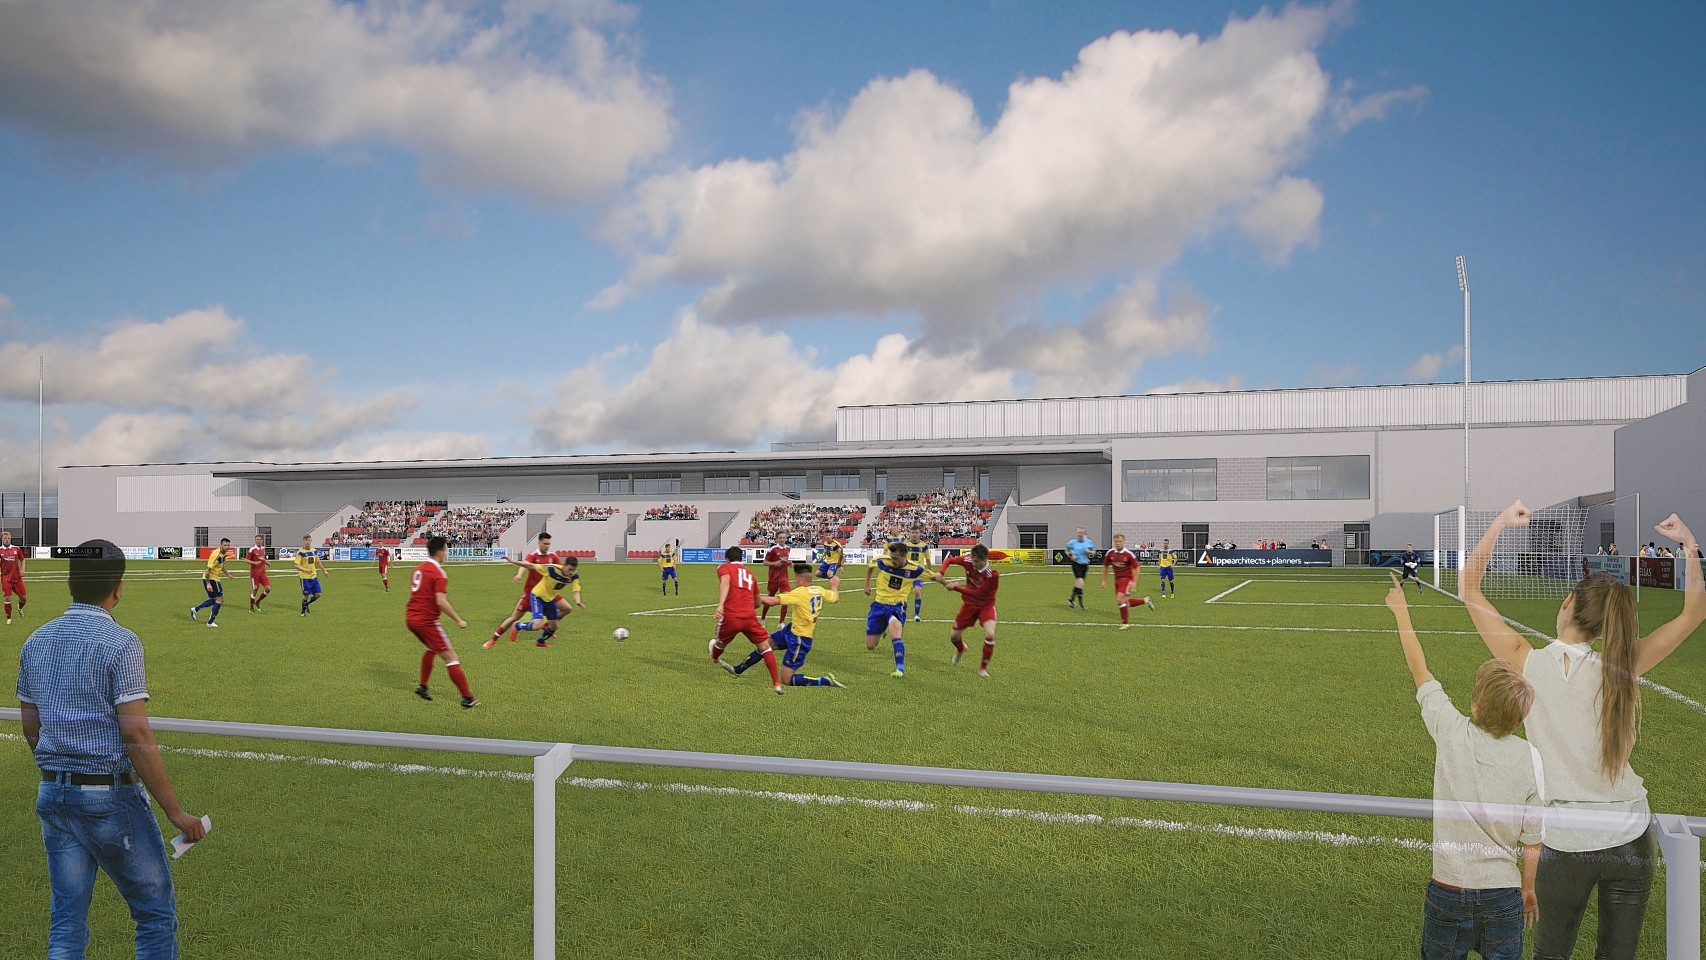 The Inverurie Loco Works FC grounds at the Garioch Sports and Community Centre